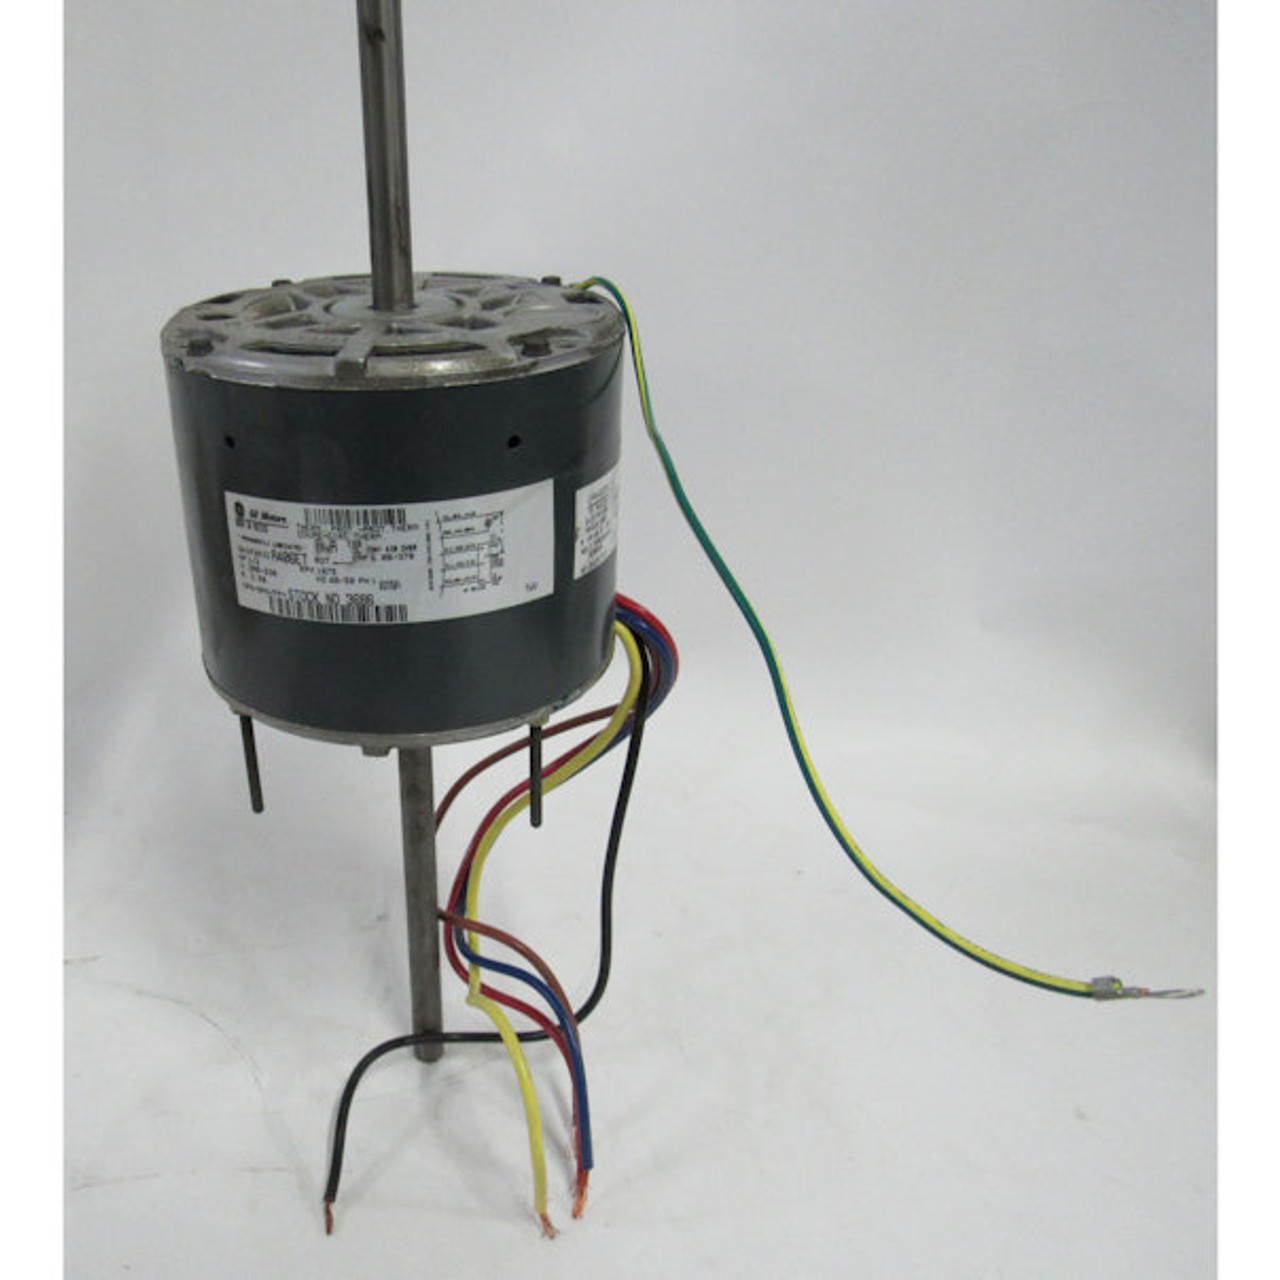 hight resolution of ge 3686 1 3 hp 208 230 volt 1075 rpm permanent split capacitor